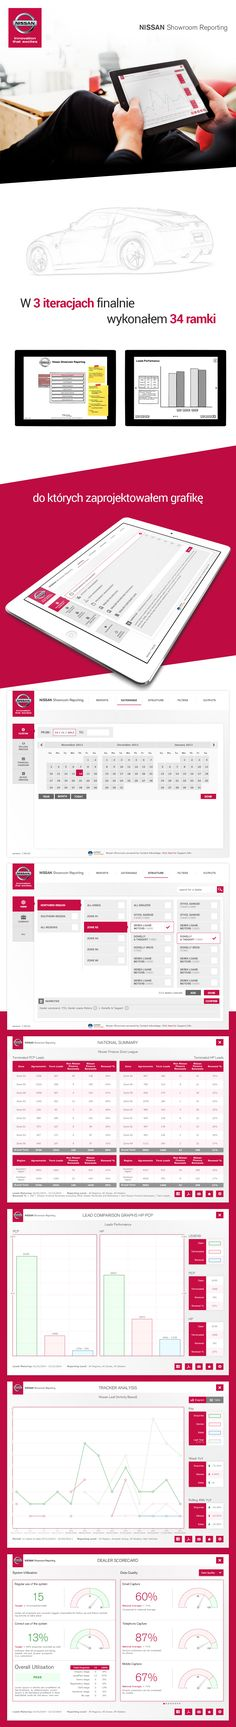 Nissan Showroom Reporting   UI/UX   User Interface   Photoshop   Diagrams